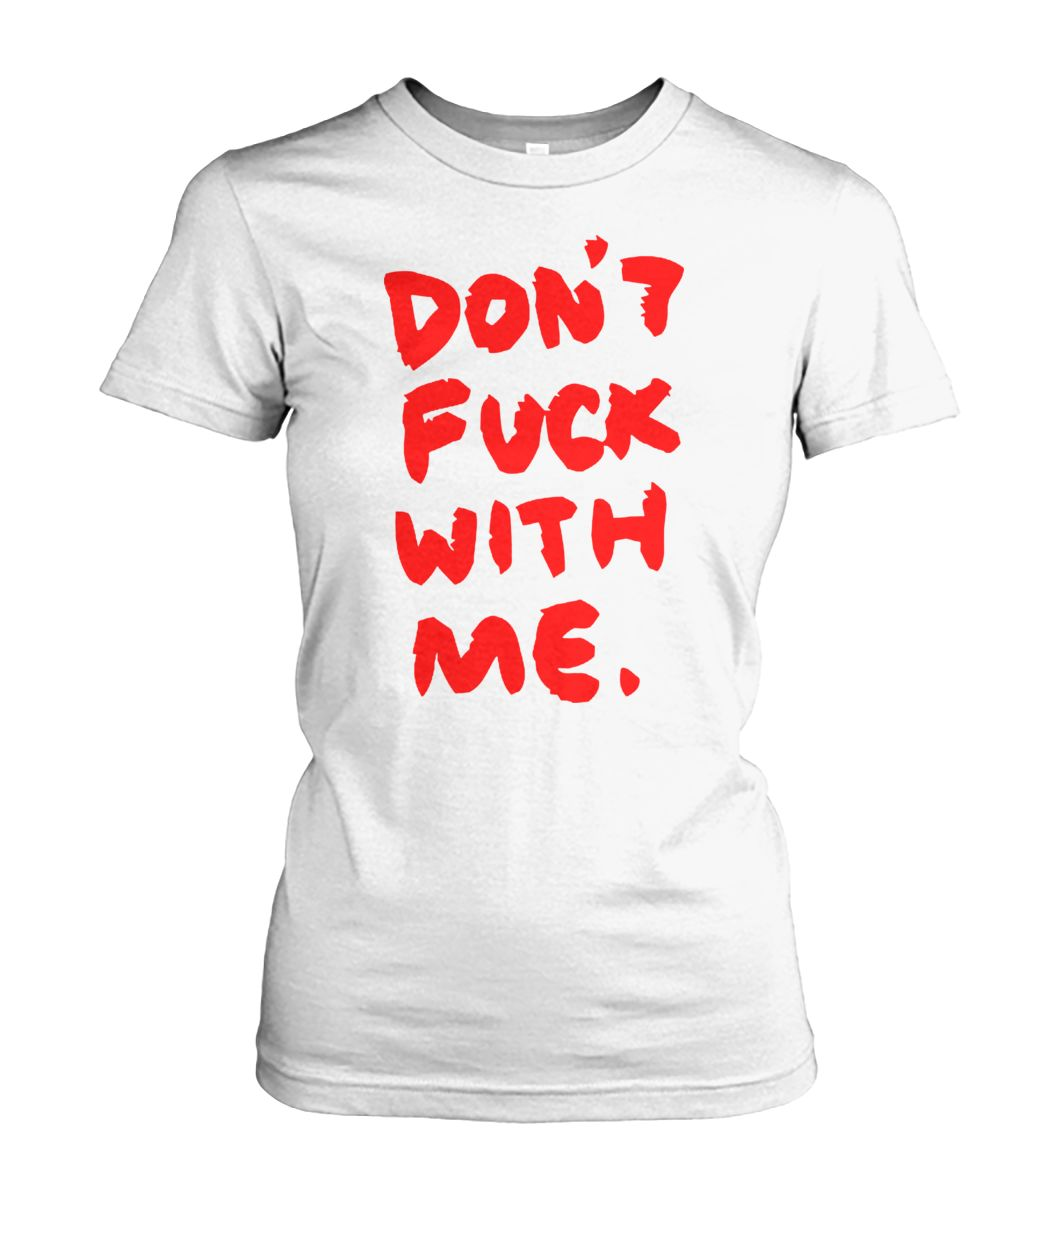 Don't fuck with me I will cry women's crew tee